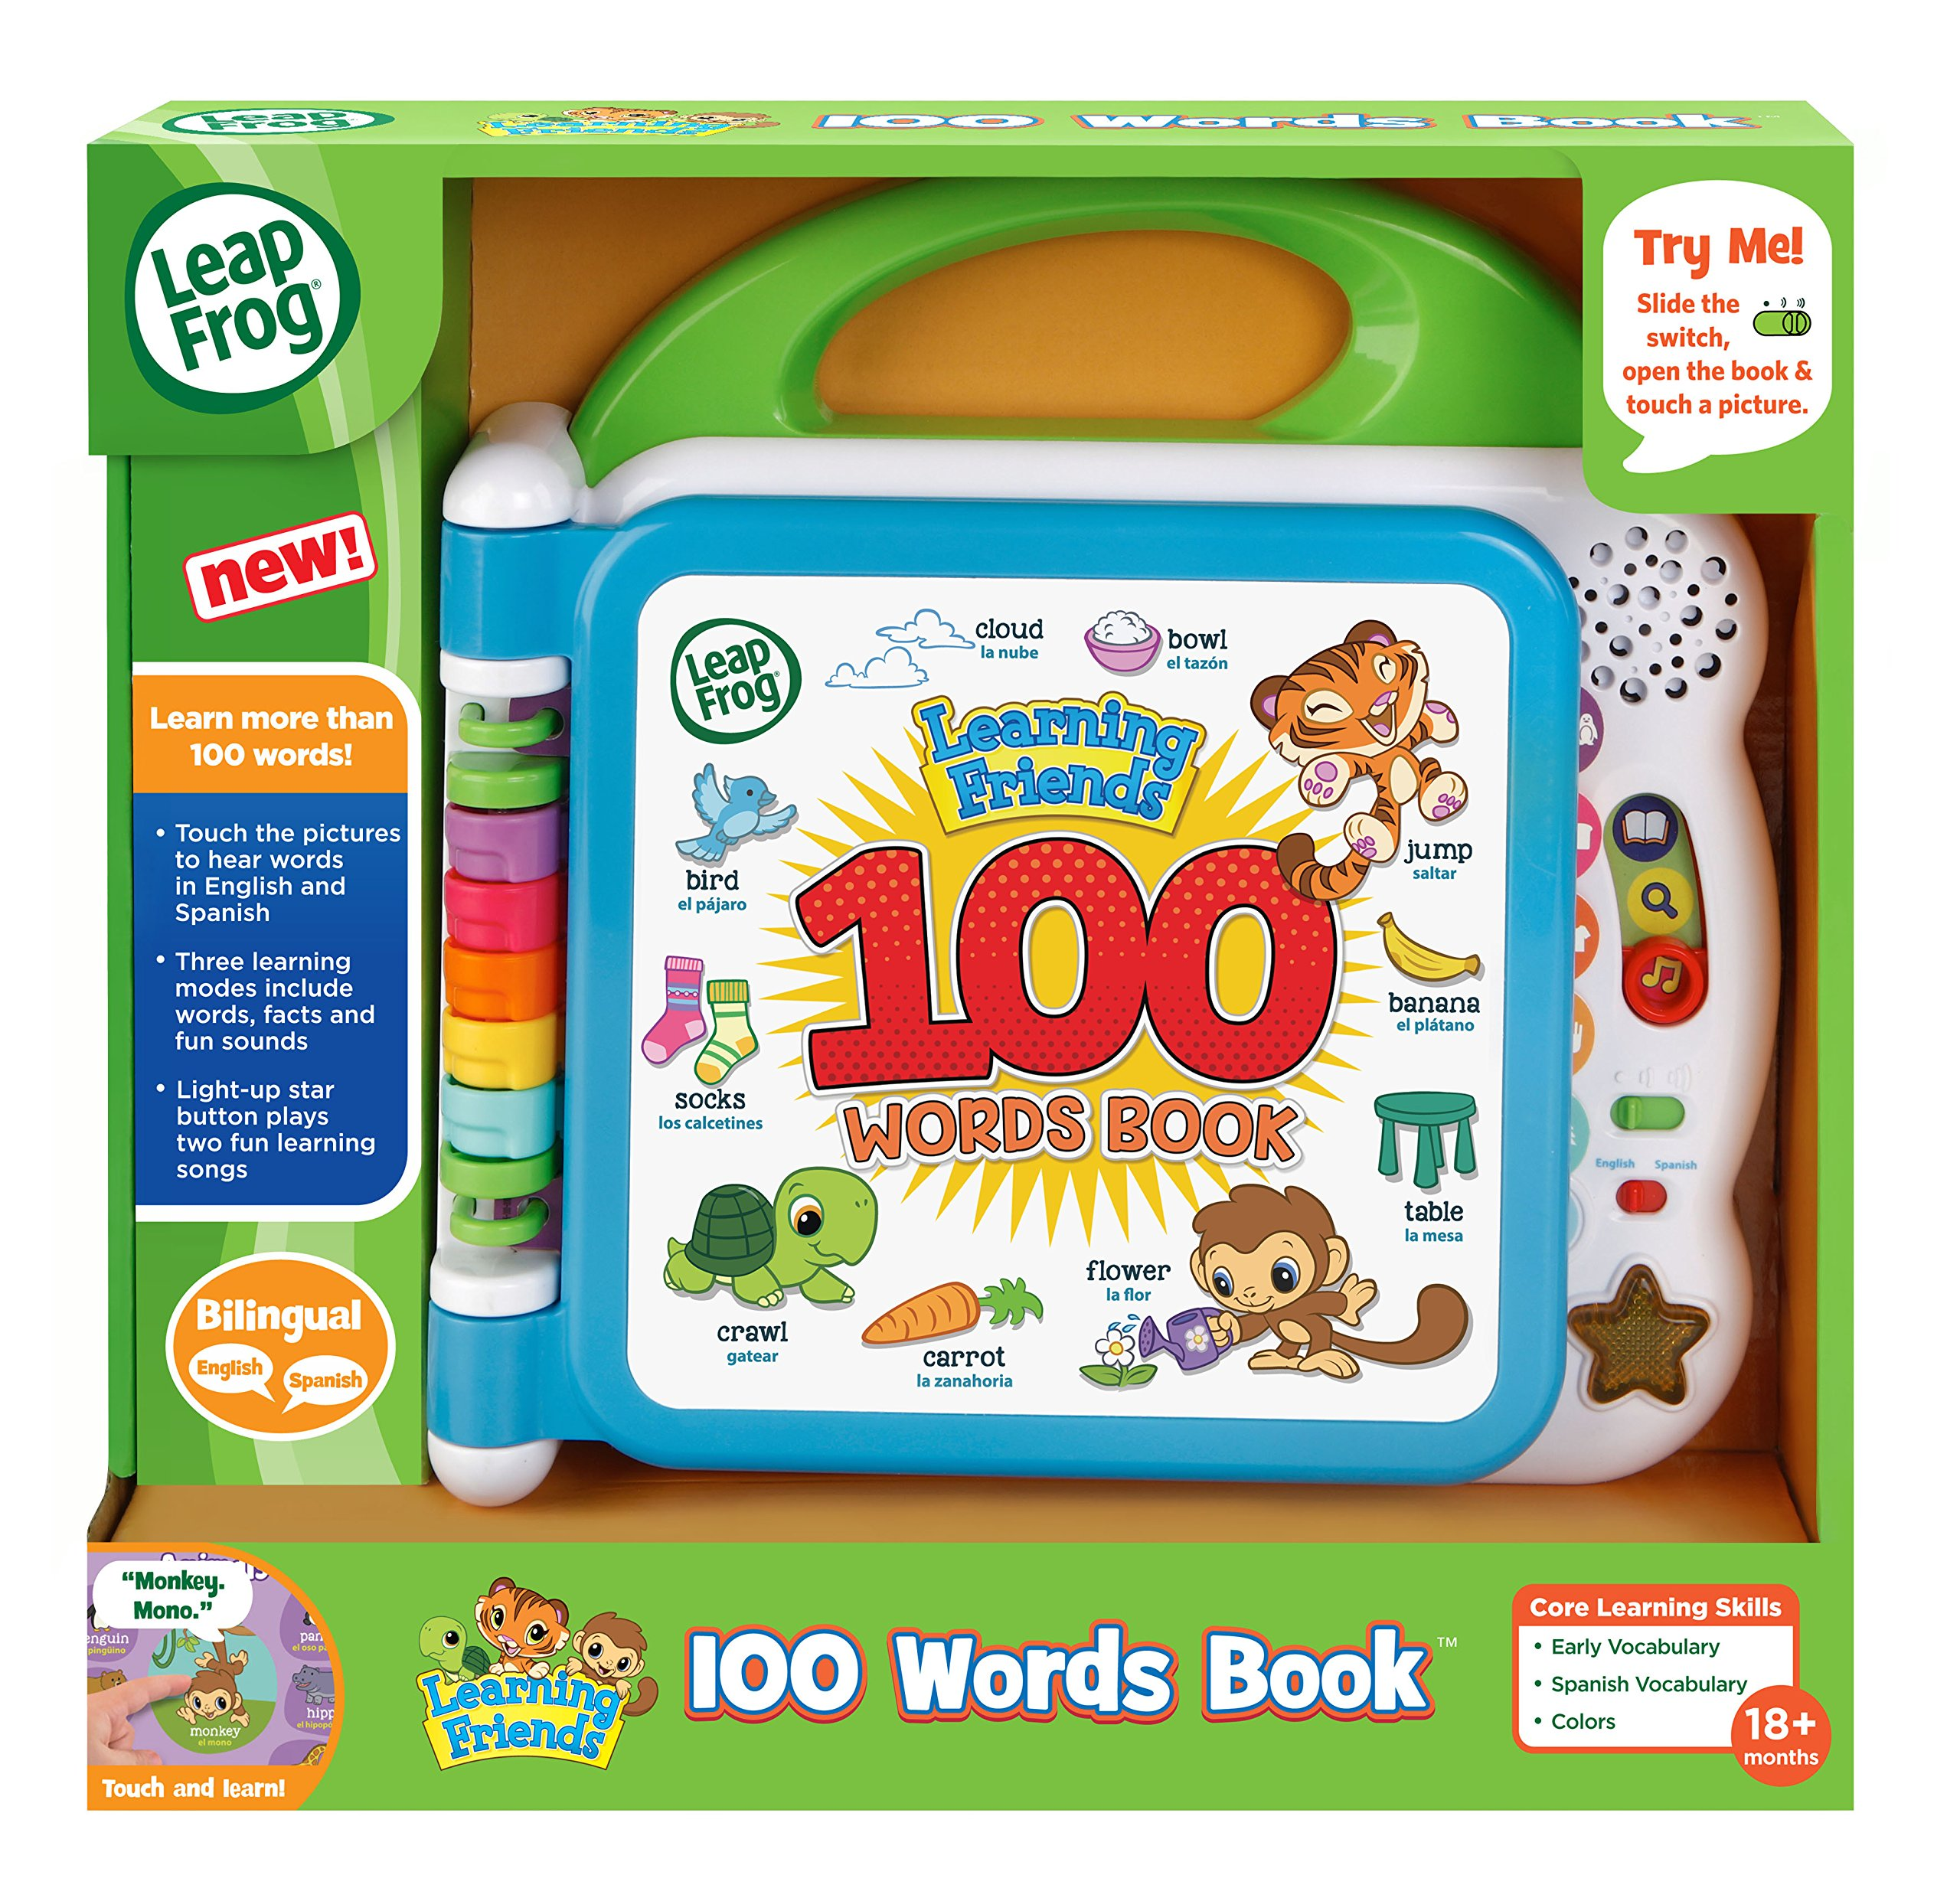 LeapFrog Learning Friends 100 Words Book, Green by LeapFrog (Image #7)